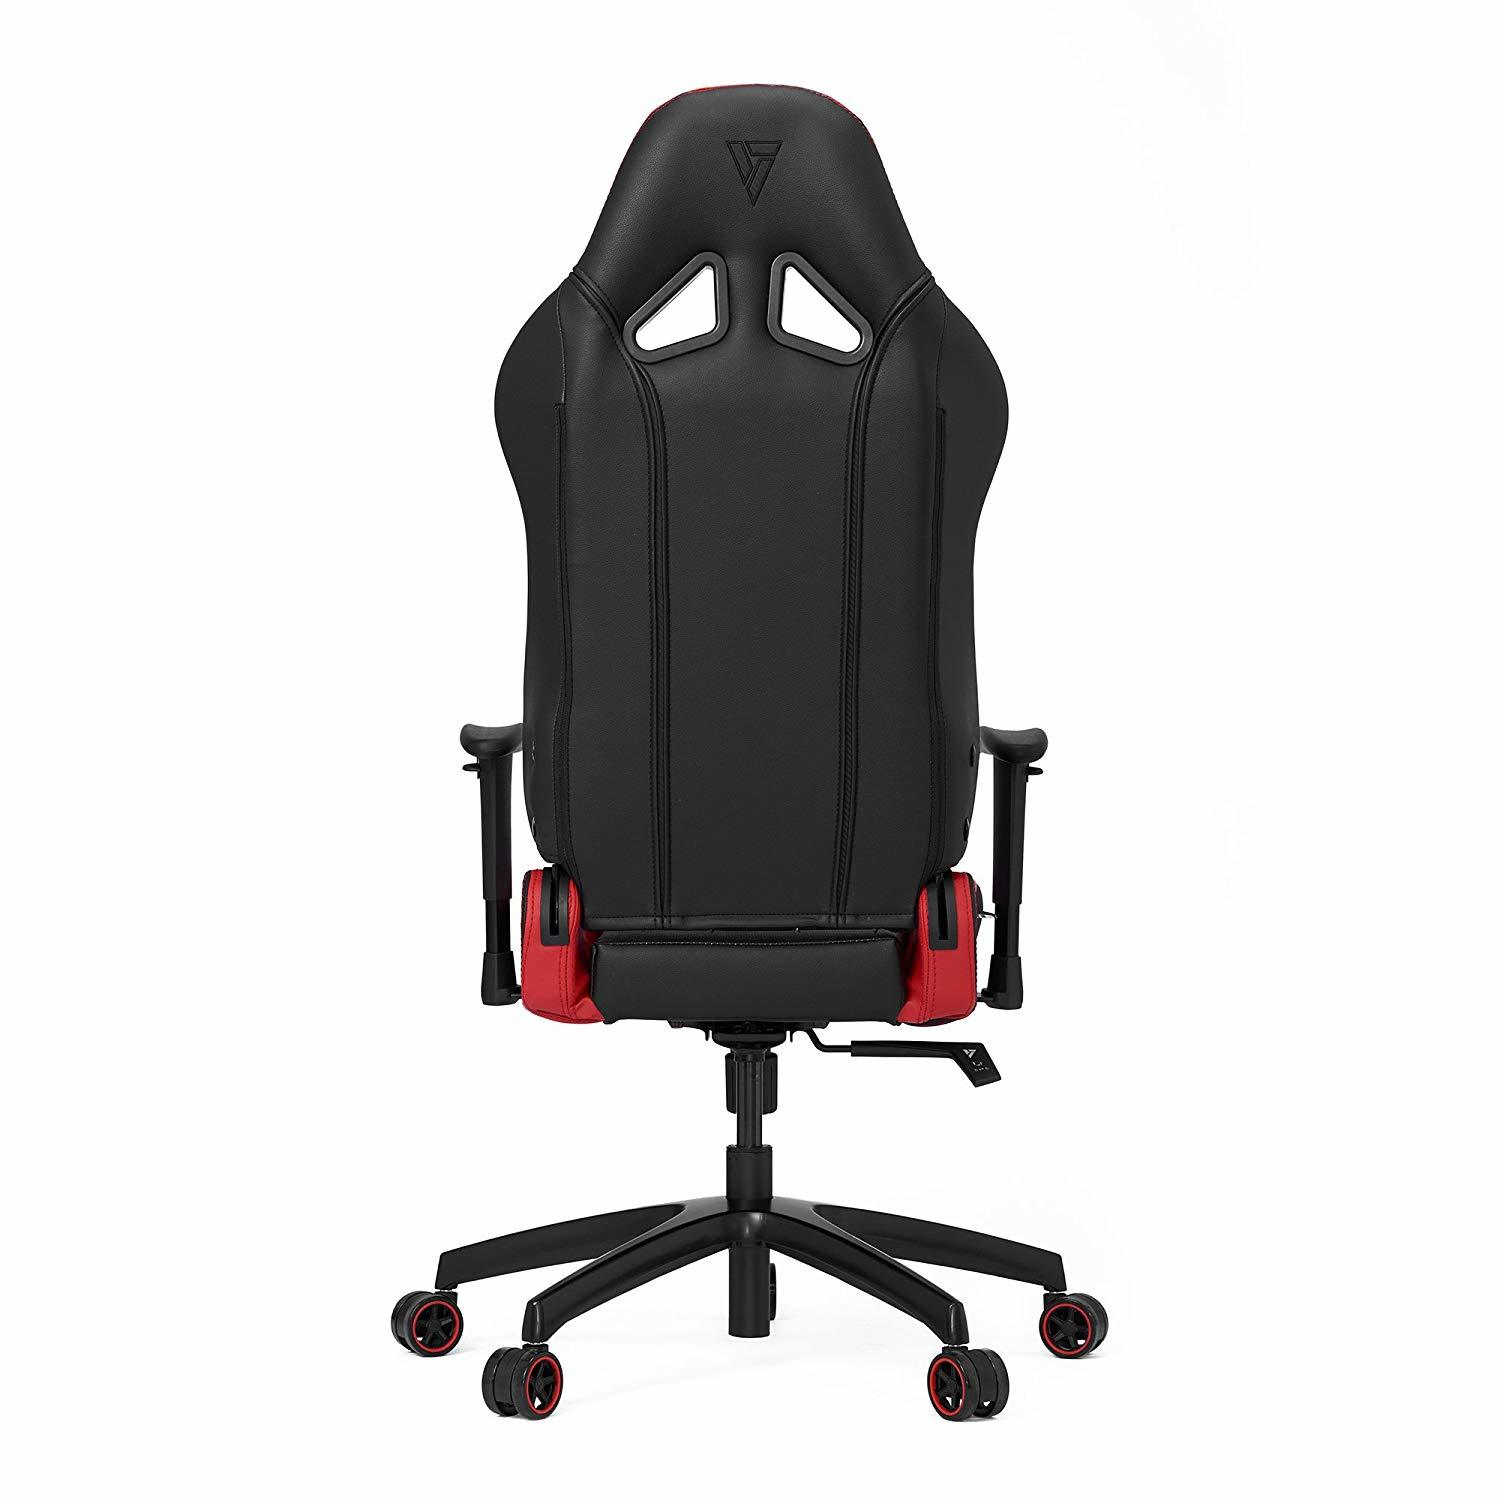 Vertagear Racing Series S-Line SL2000 Gaming Chair - Black/Red for  image